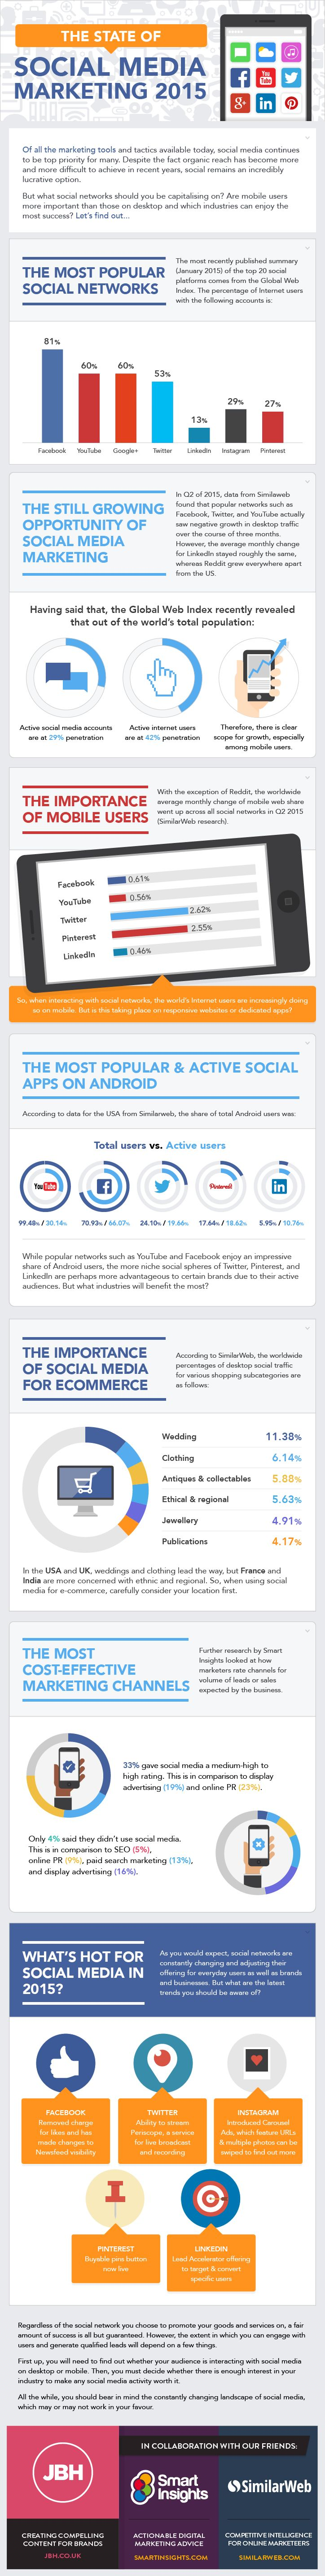 The 2015 State of Social Media Marketing [INFOGRAPHIC] | Social Media Today